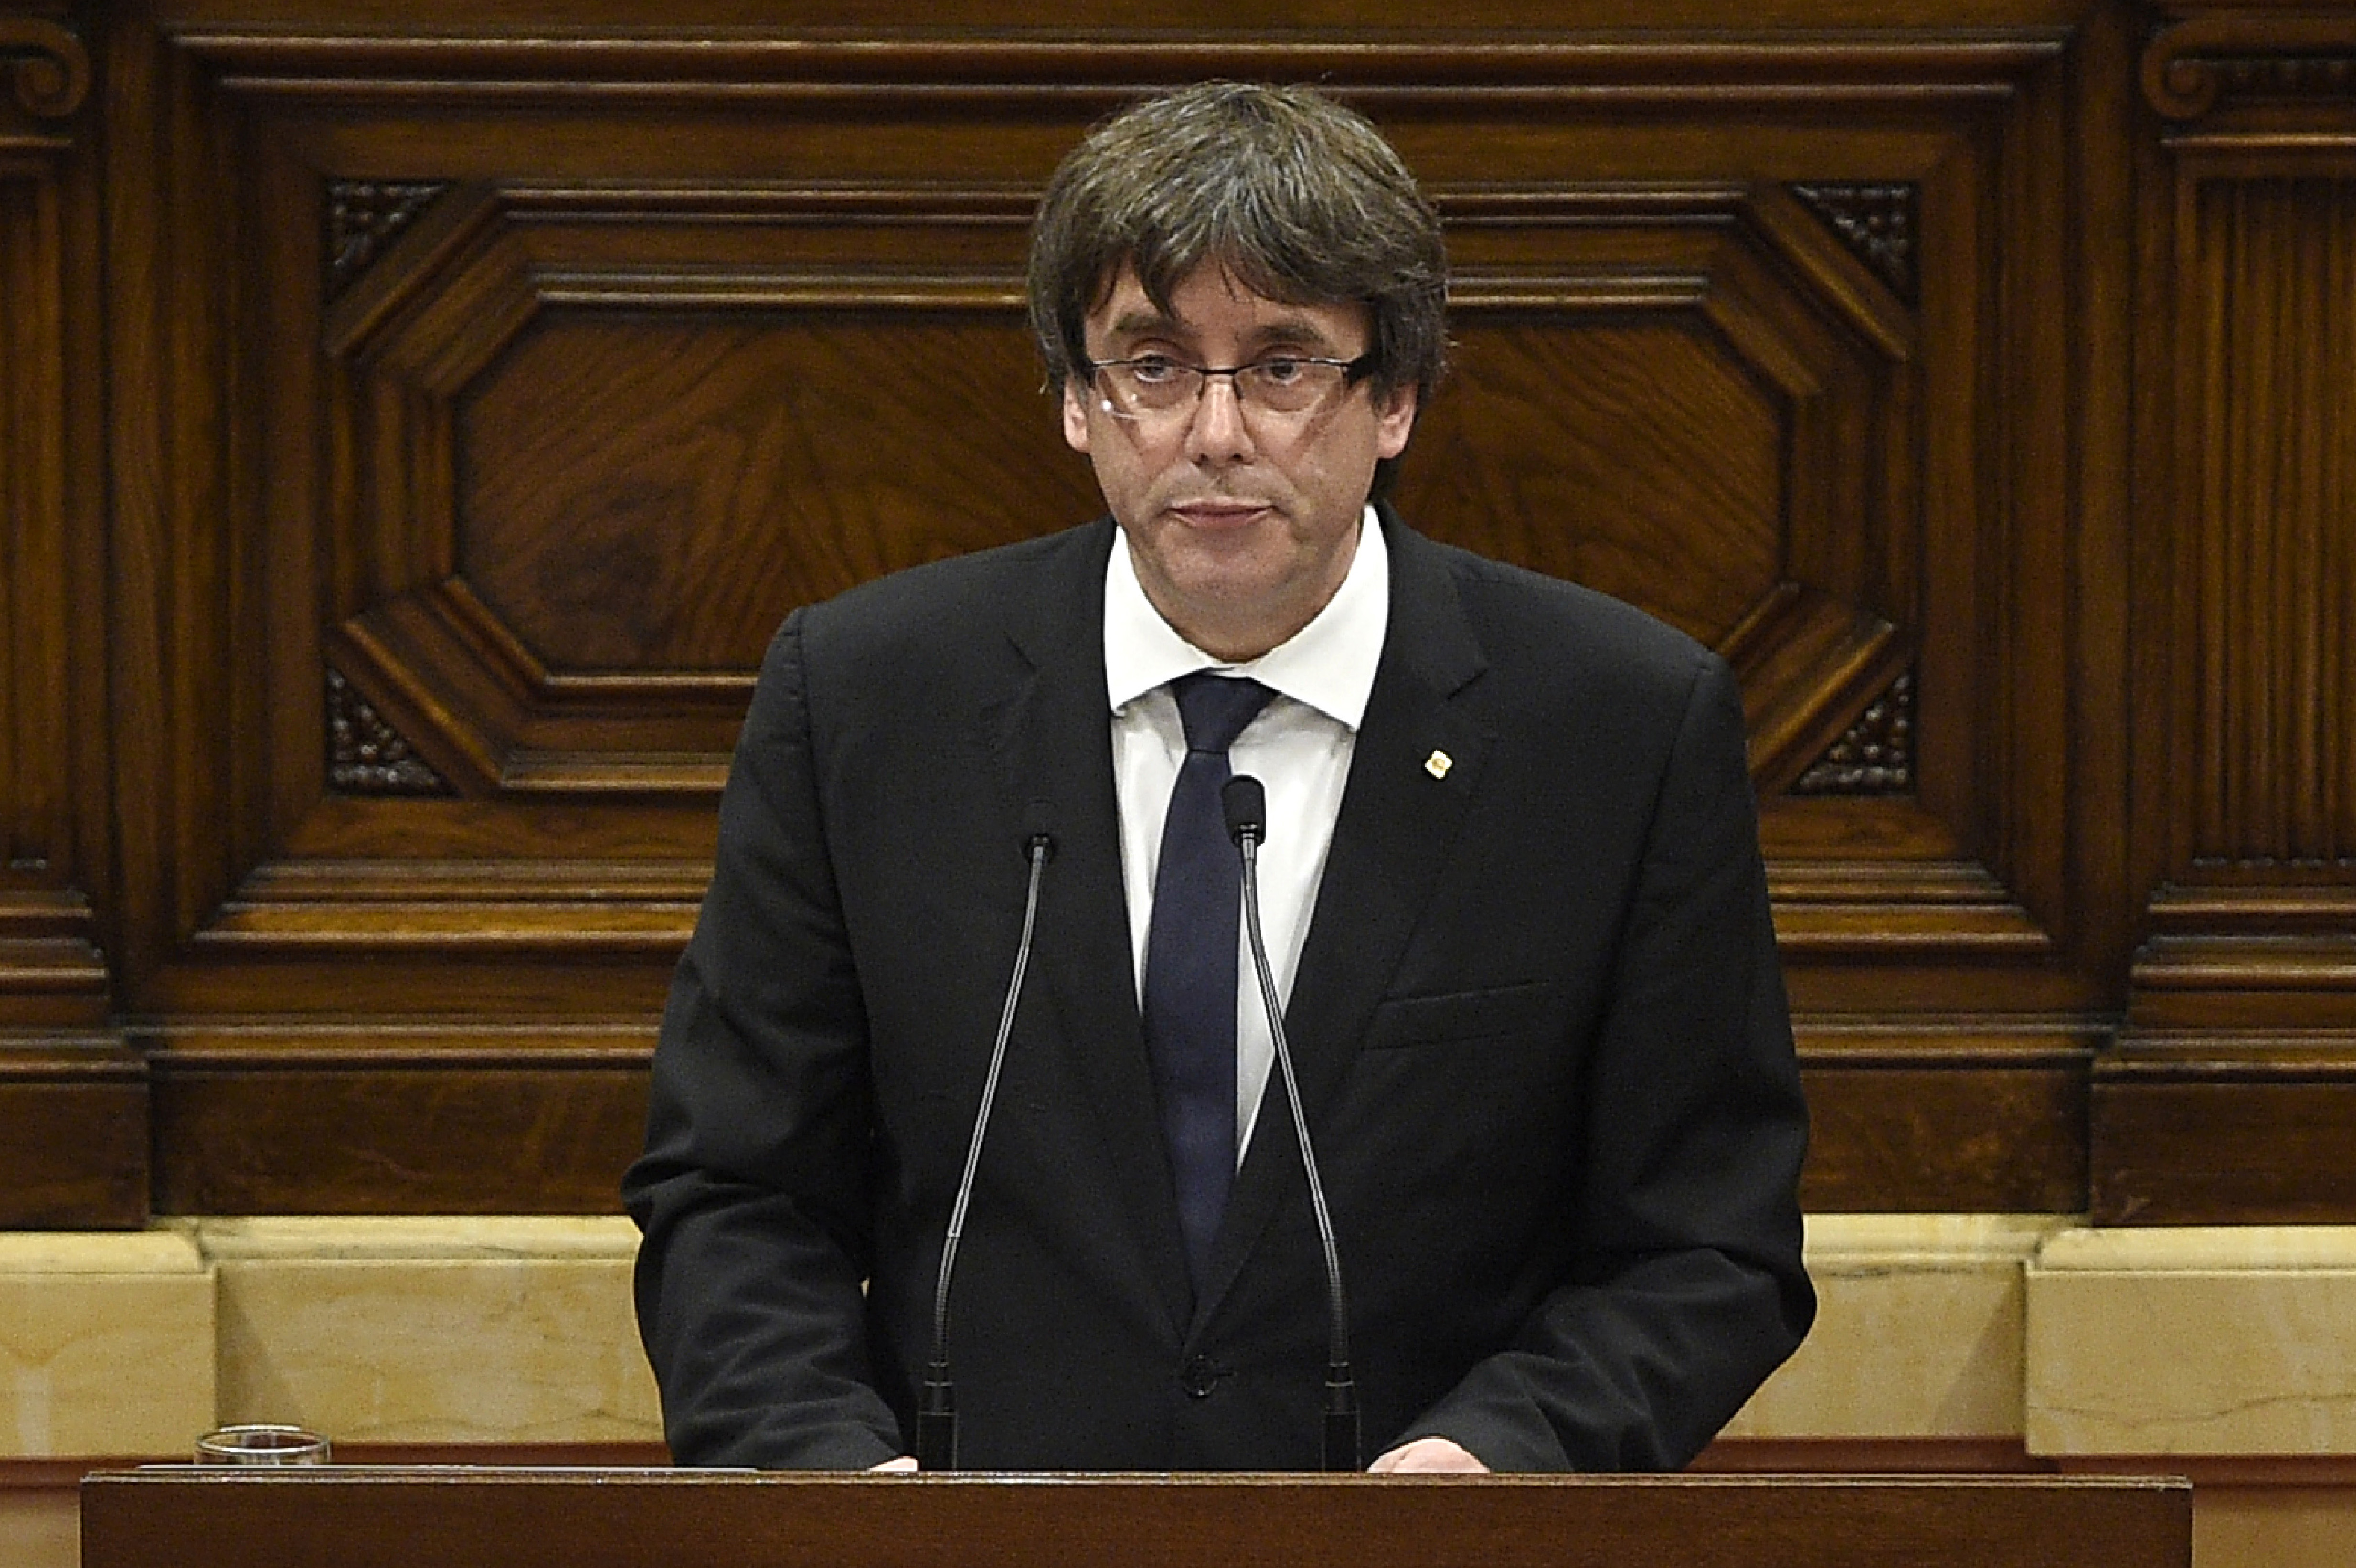 Catalan regional government president Carles Puigdemont gives a speech at the Catalan regional parliament in Barcelona, Oct. 10, 2017.